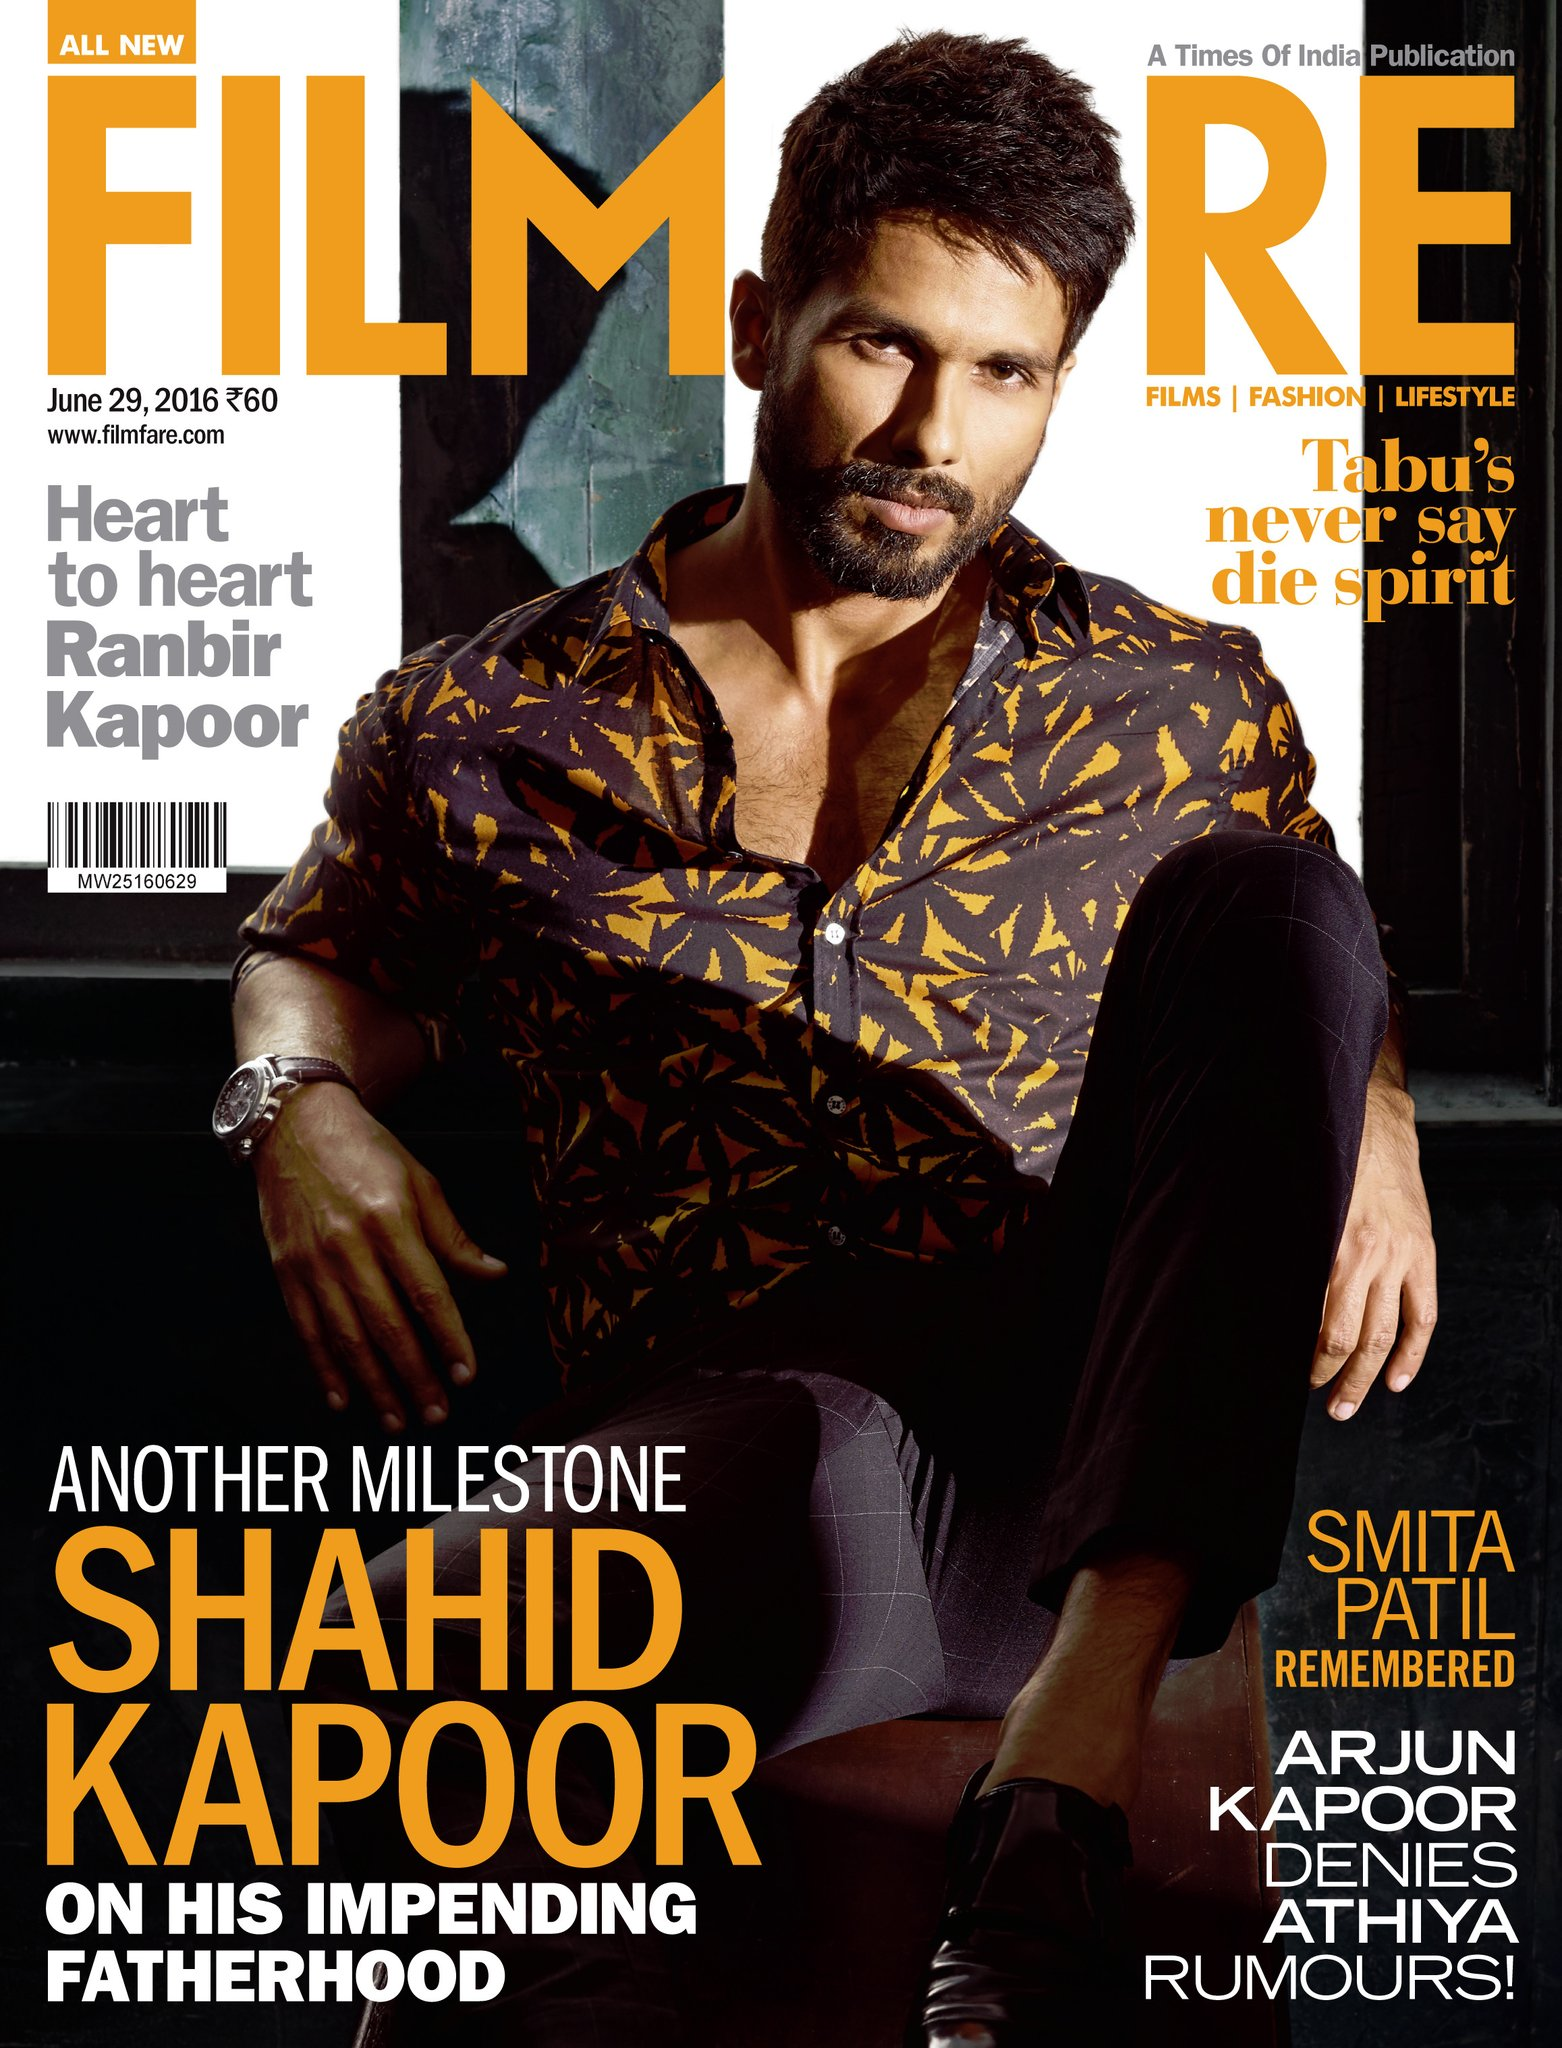 Shahid Kapoor On The Cover Of Filmfare Magazine India June 2016